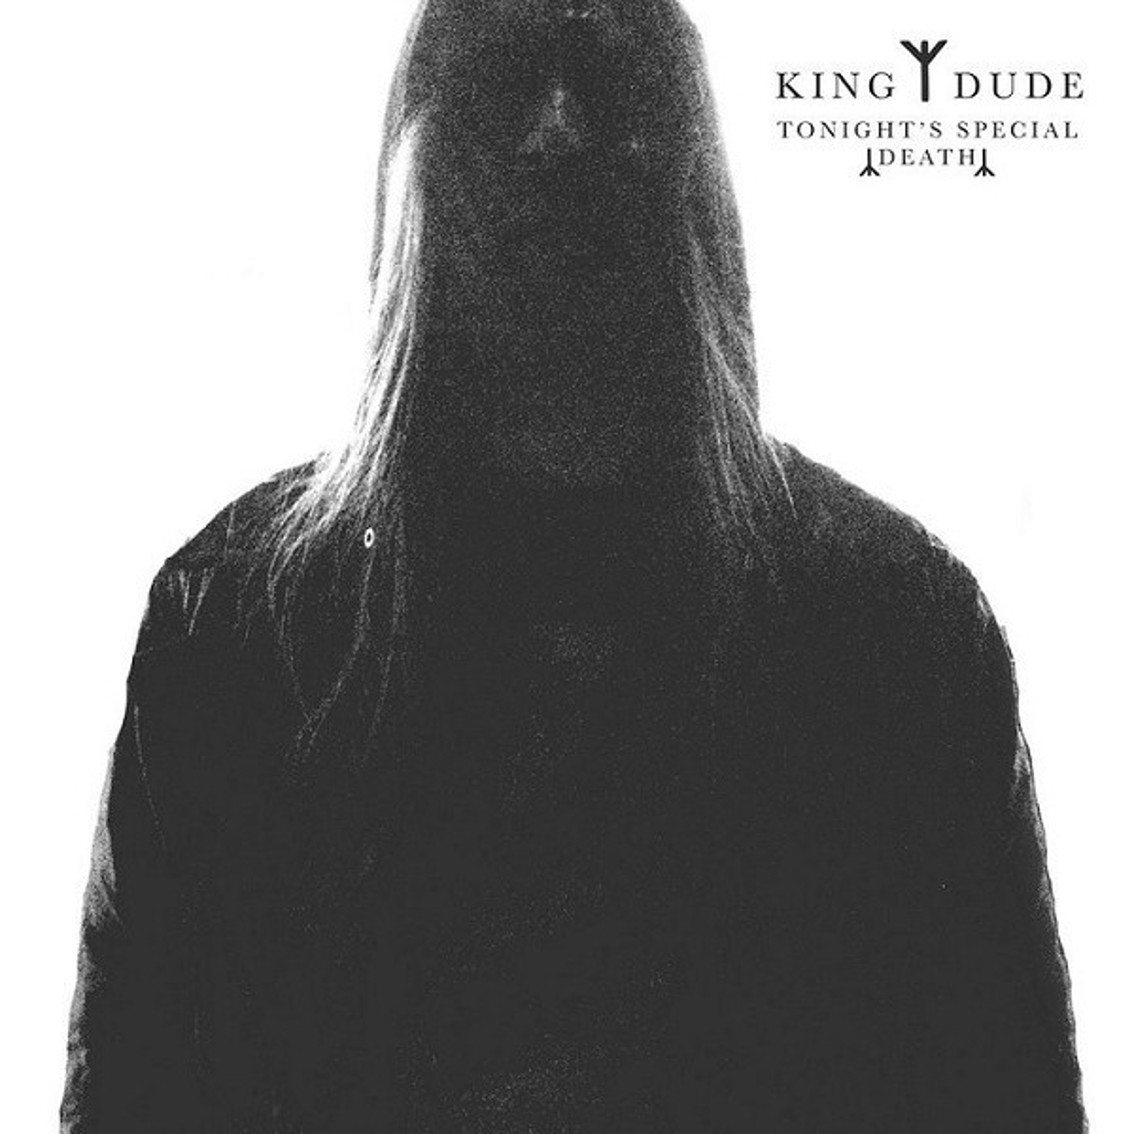 King Dude CDr-only release'Tonight's special death' gets official re-release with bonus tracks